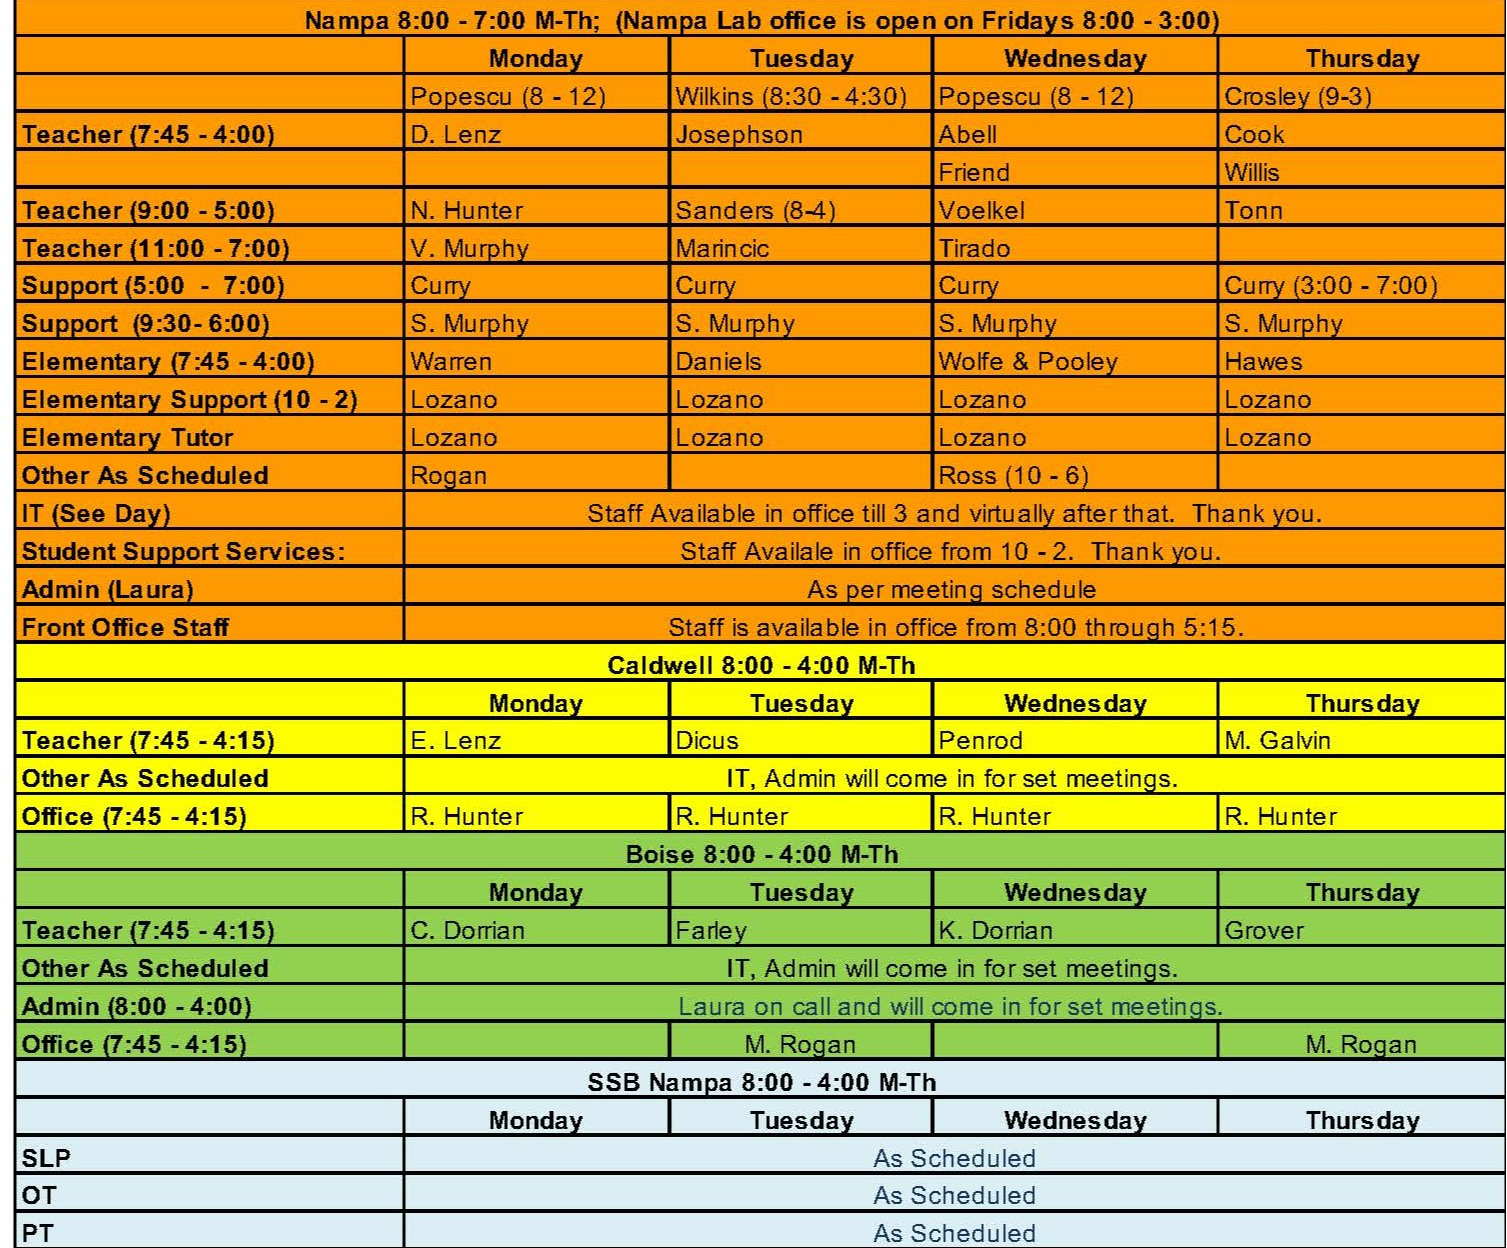 Computer Lab Schedule across campuses